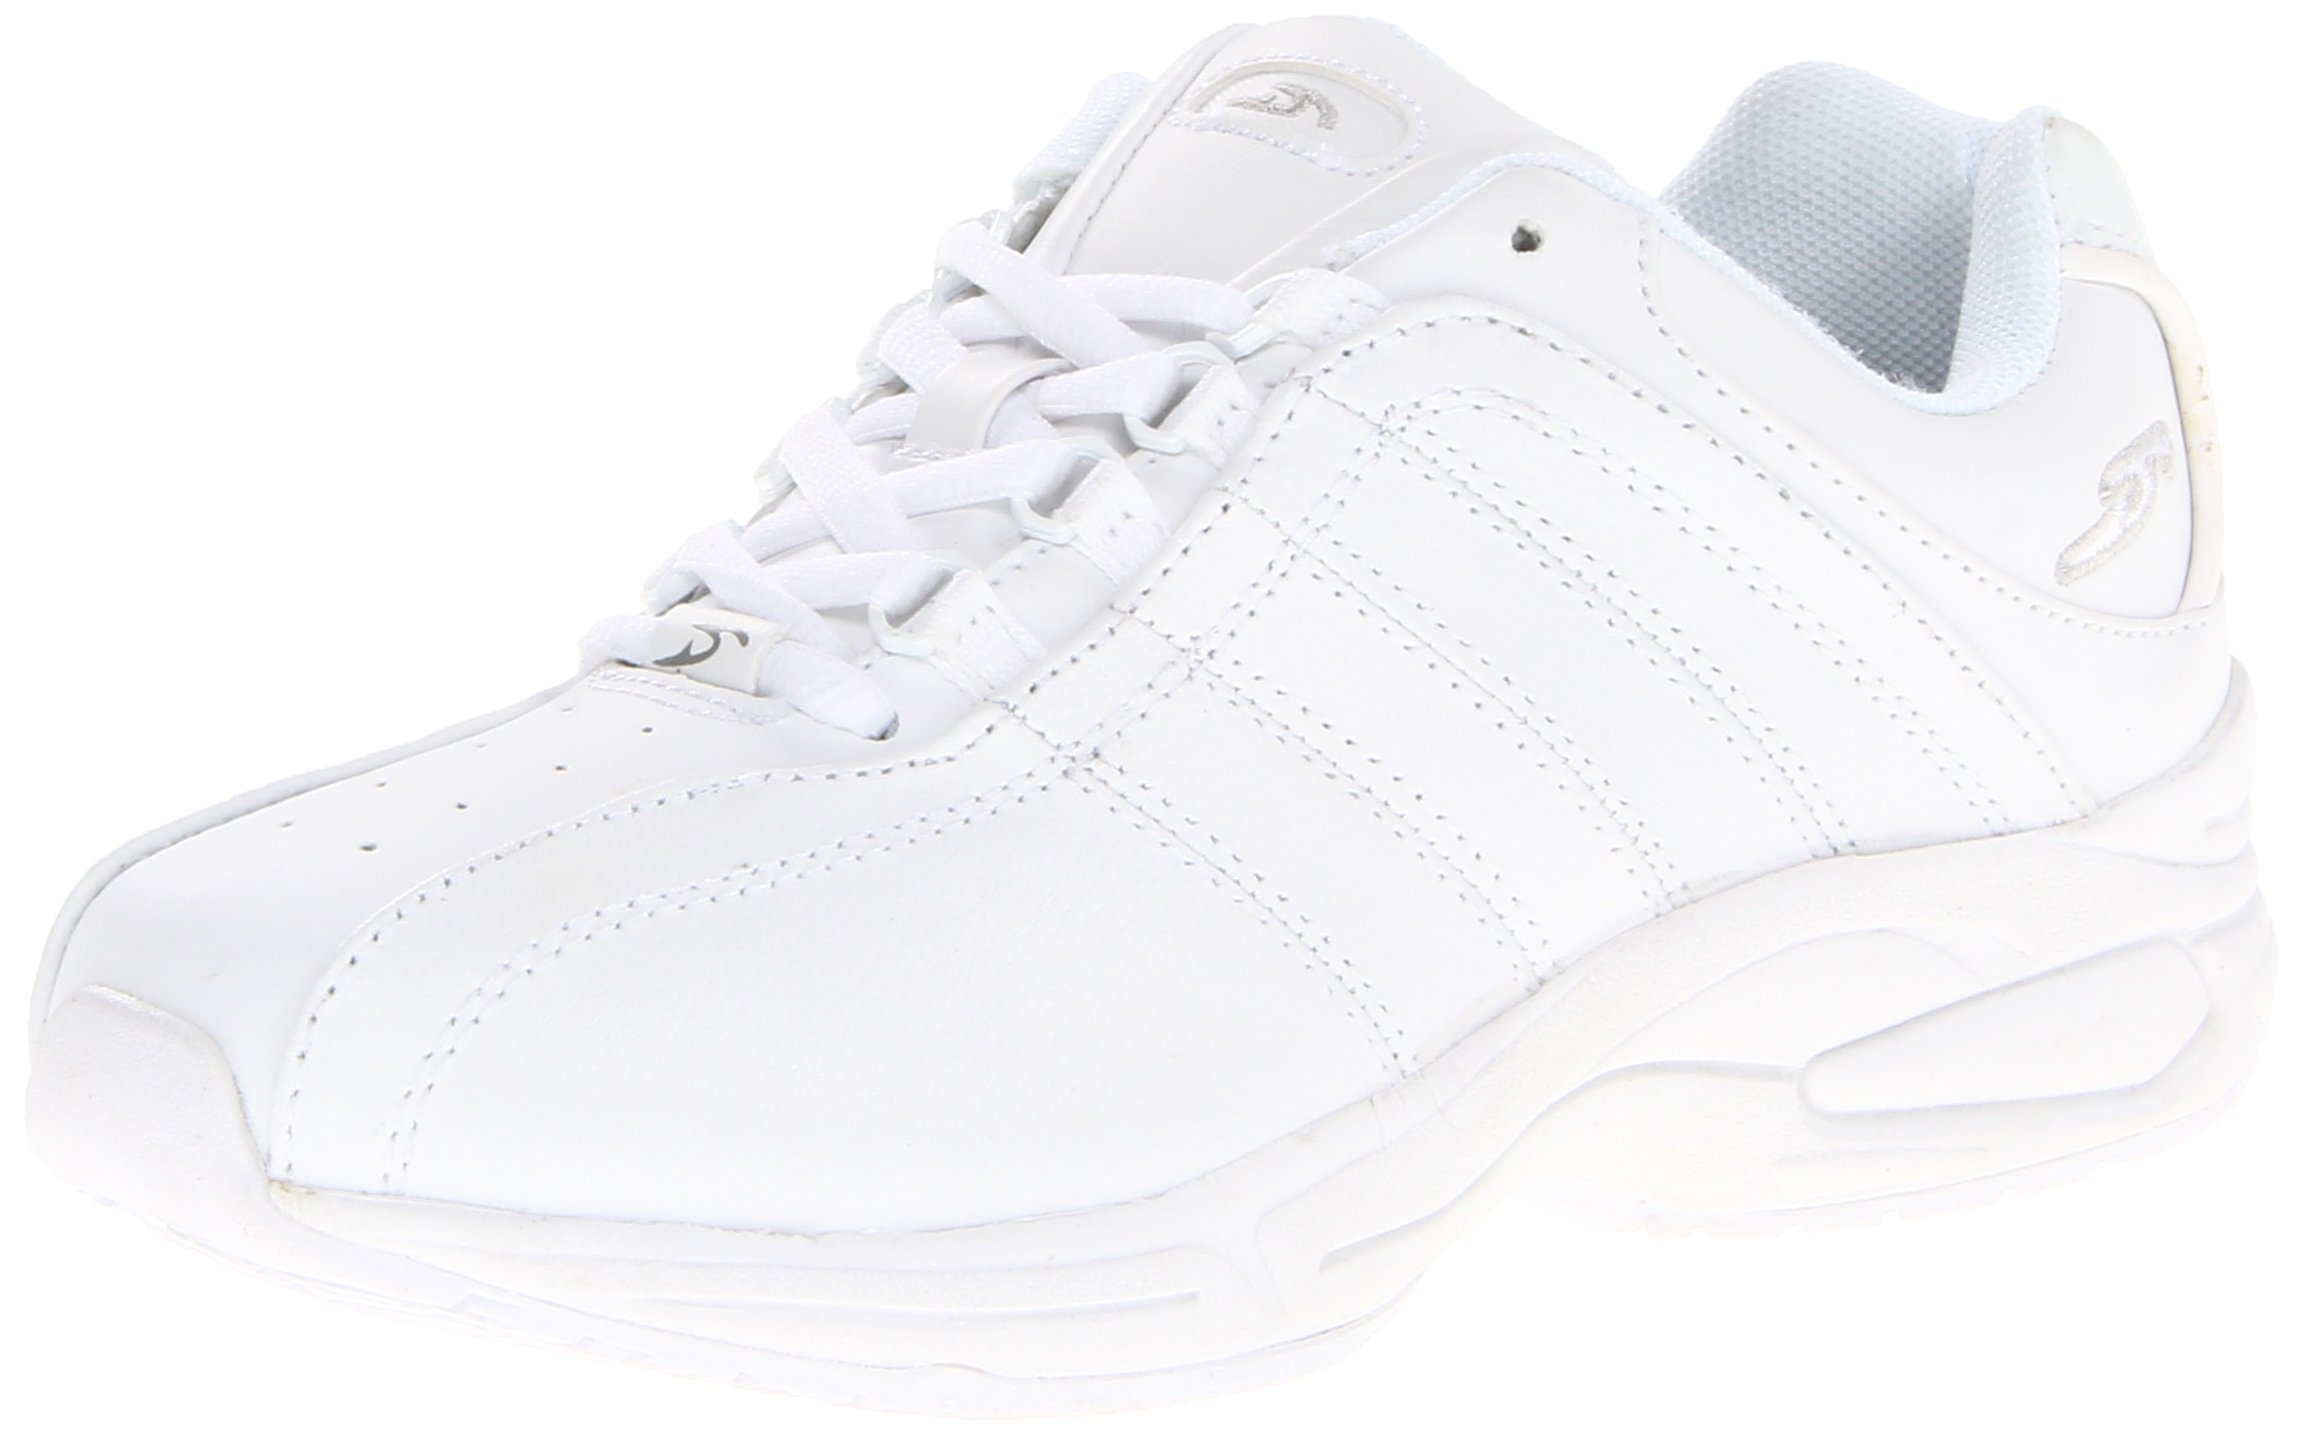 Dr. Scholl's Women's Kimberly Slip Resistant Work Shoe,Super White,8.5 W US